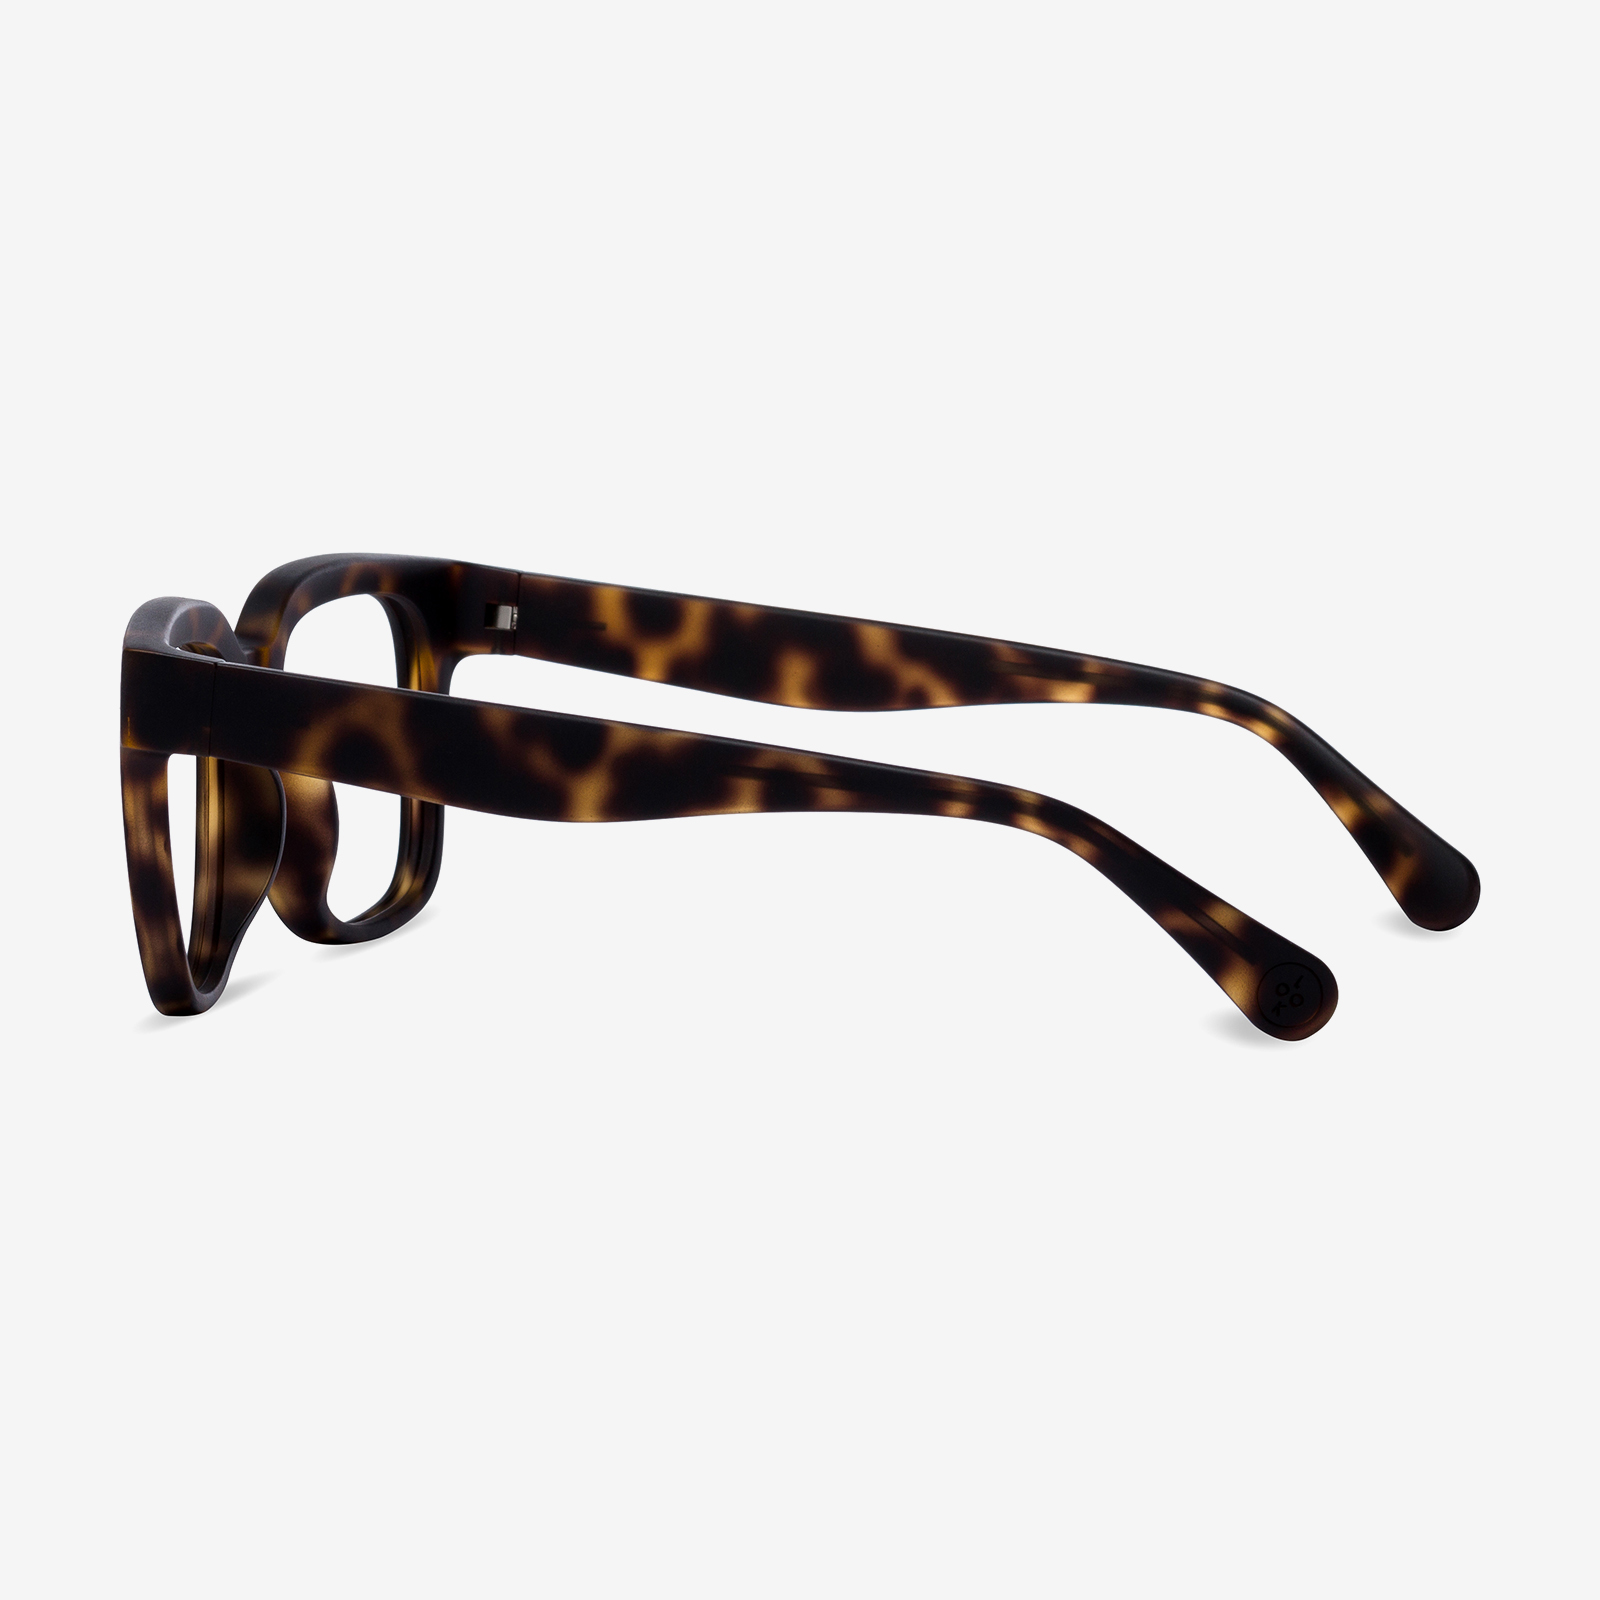 Tortoiseshell glasses product image